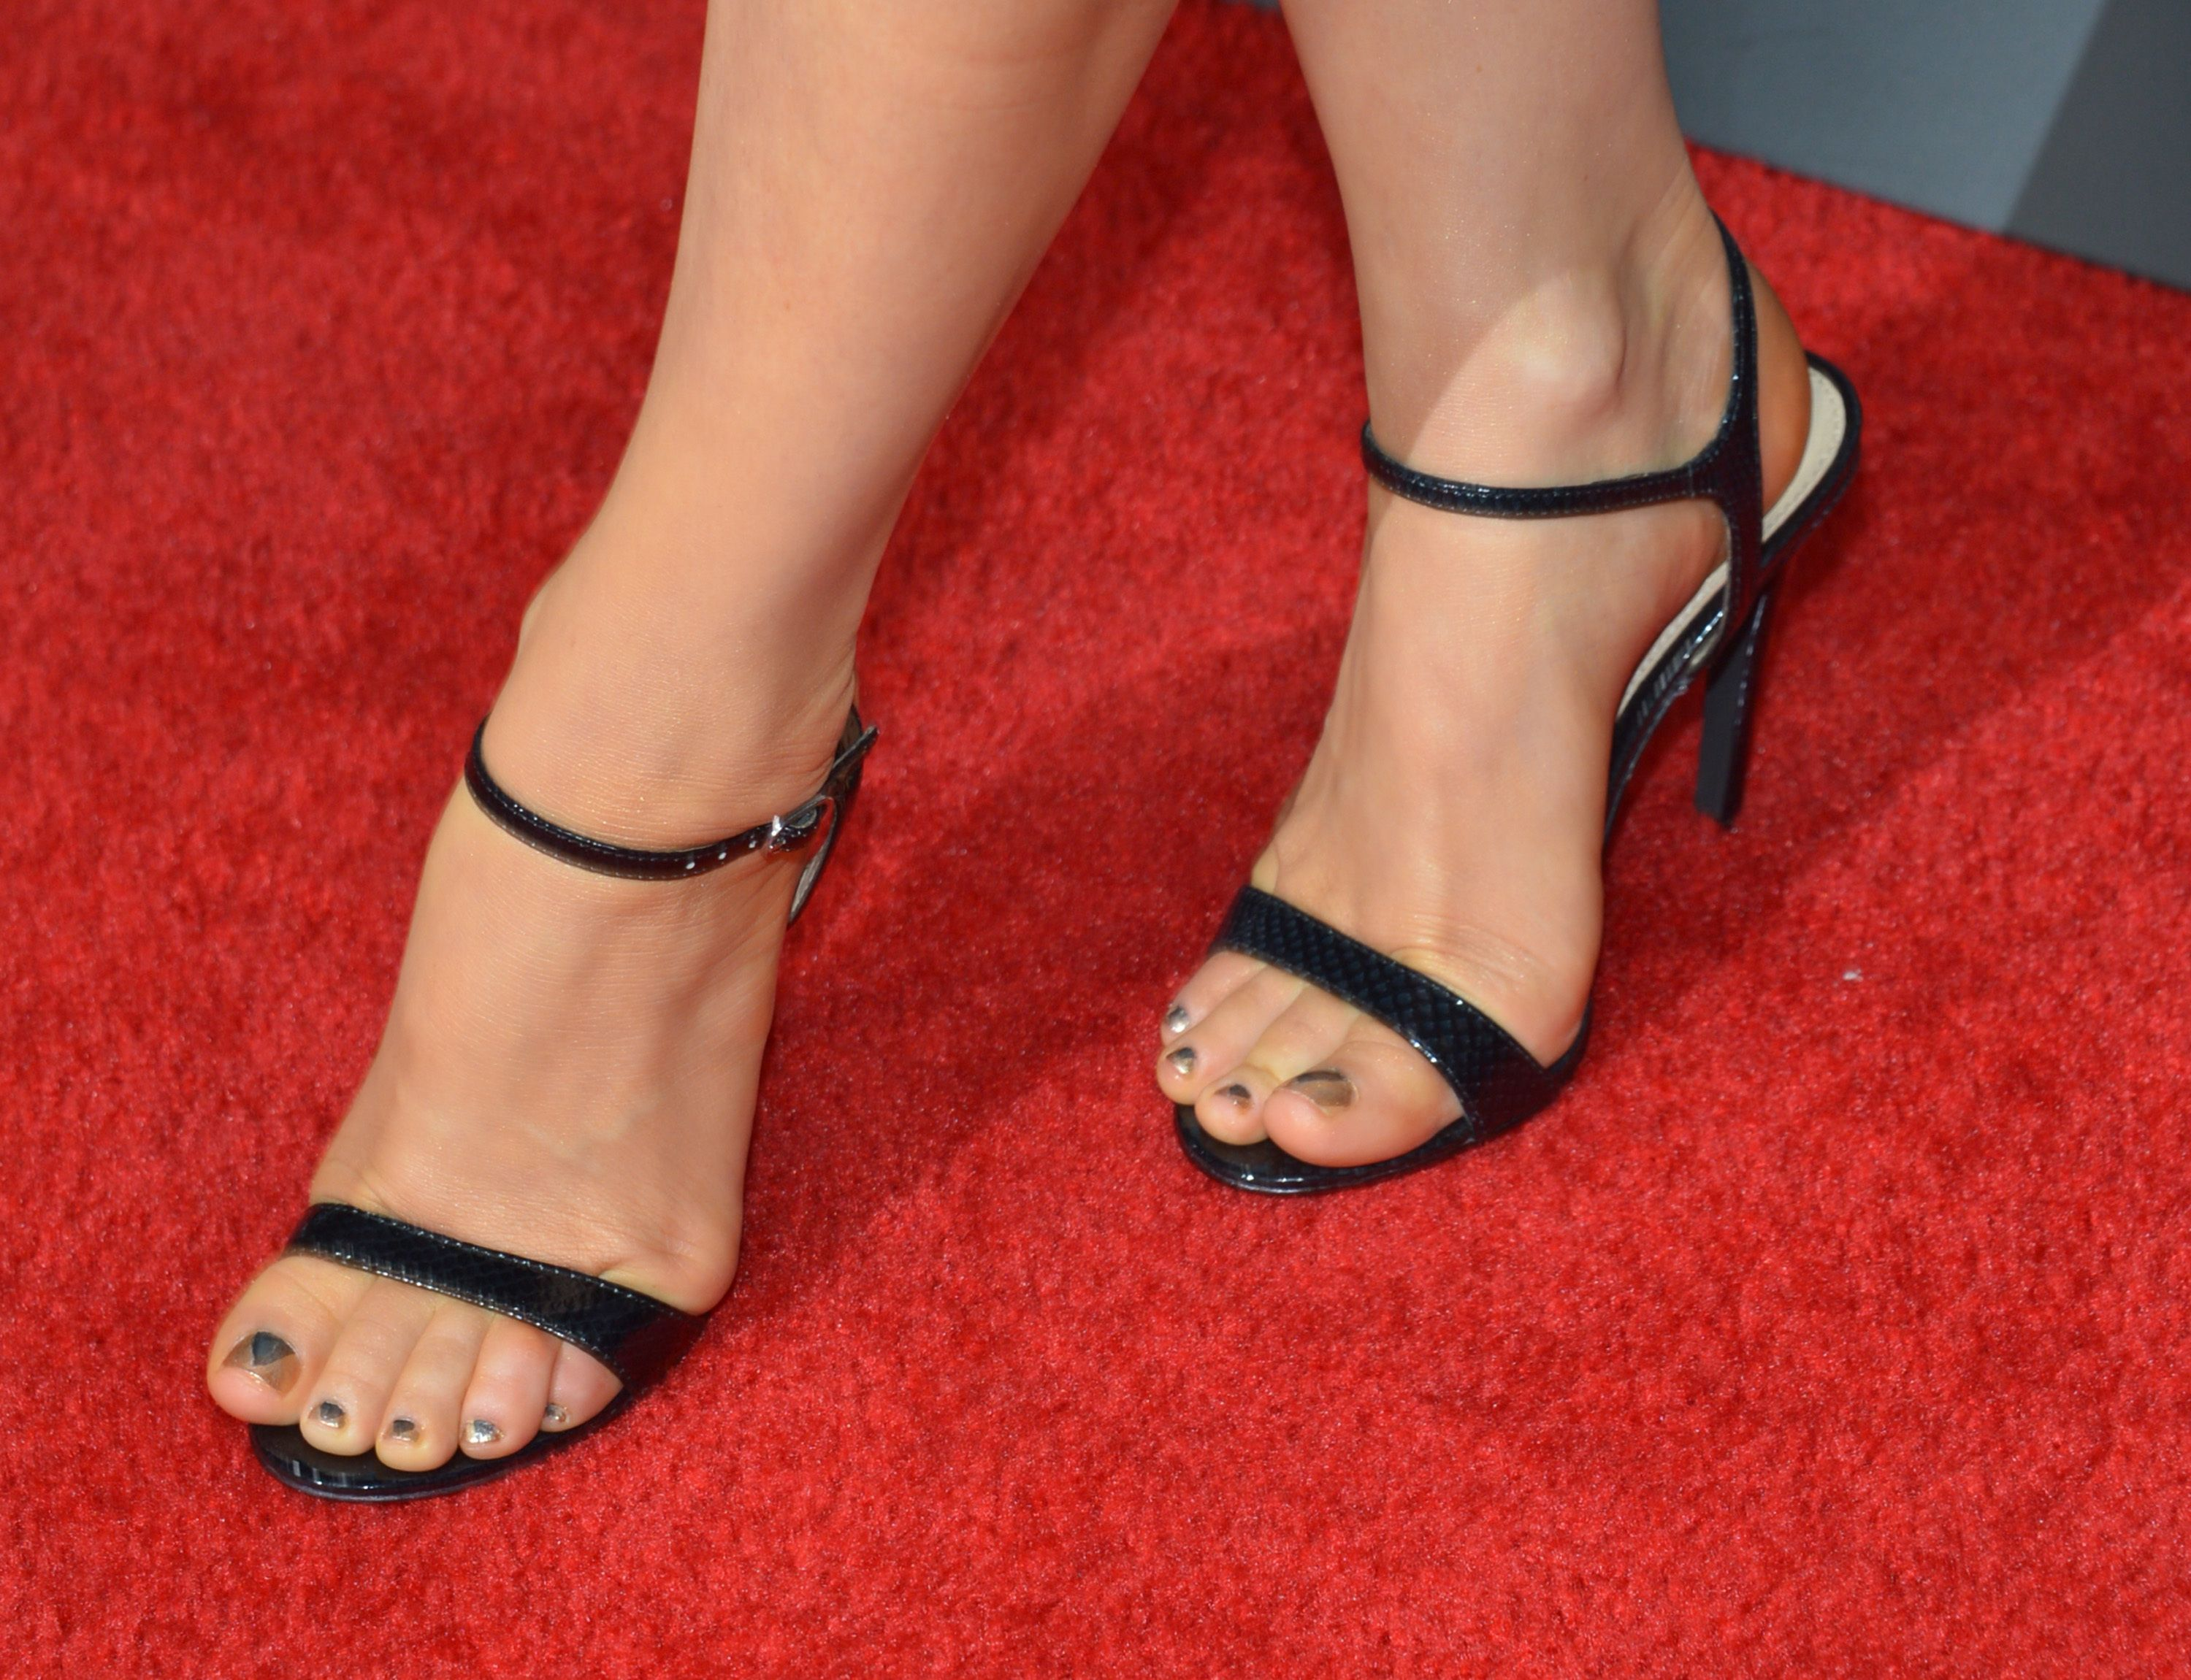 Stacy Ferguson S Feet